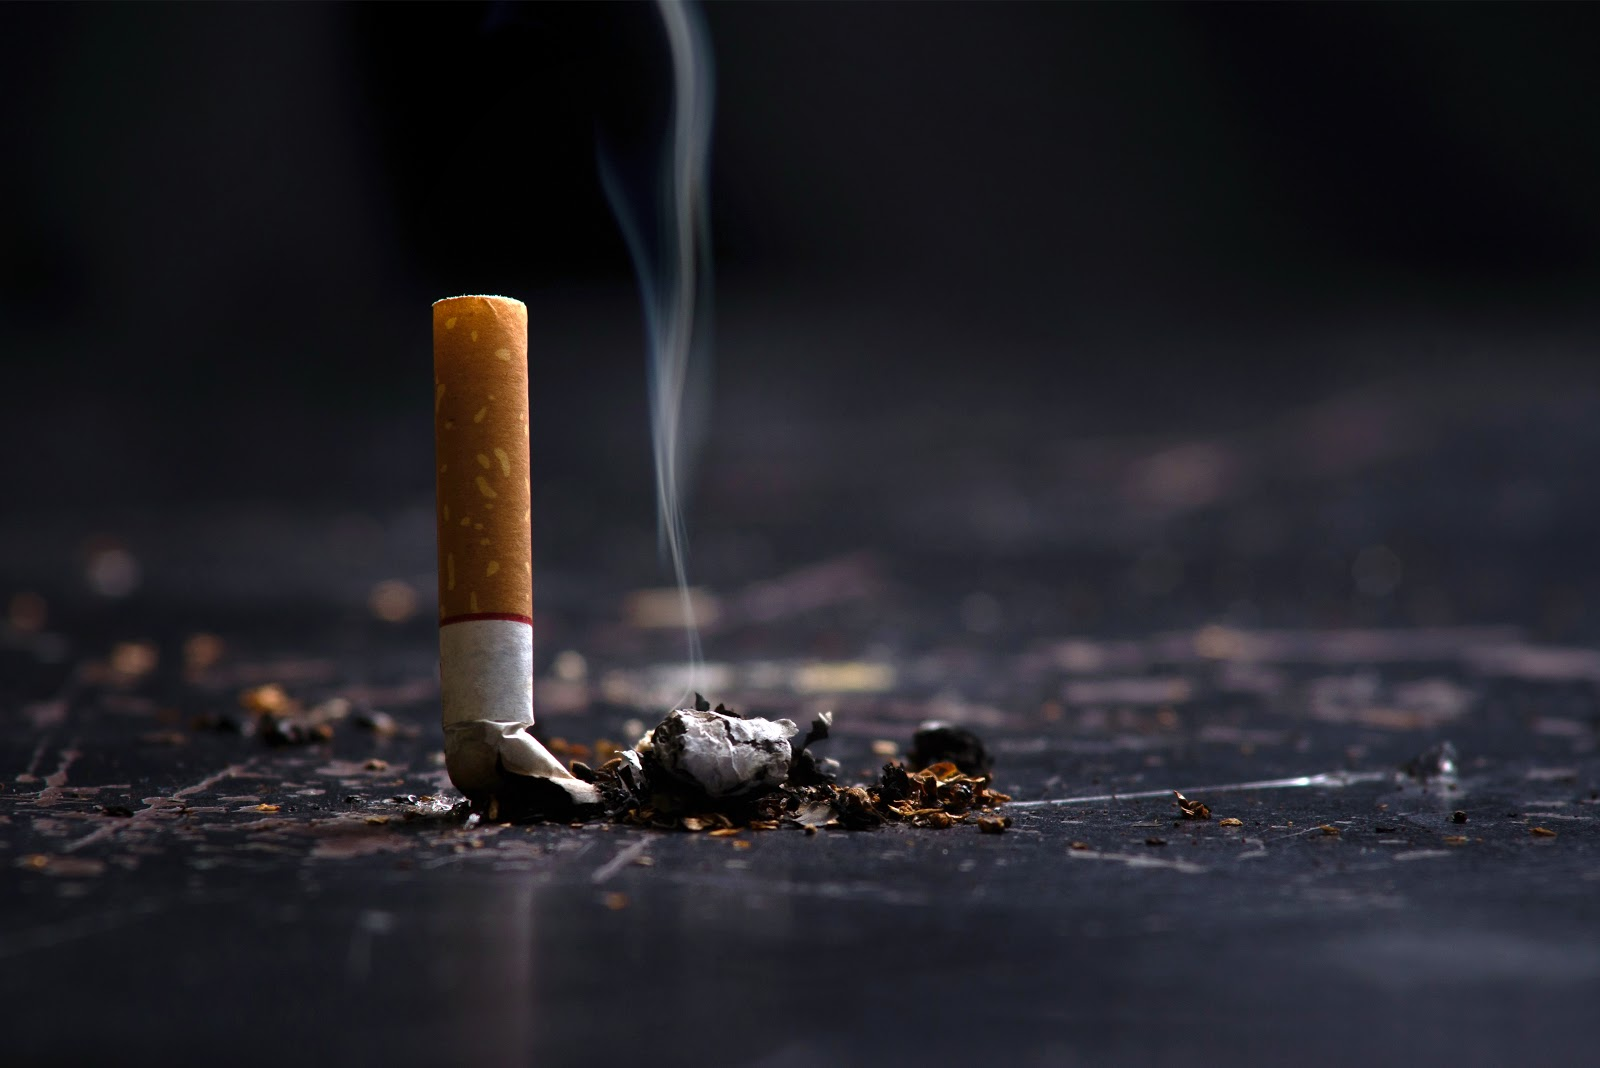 An image of a cigarette and the smoke and tar it produces which is inhaled when smoking.